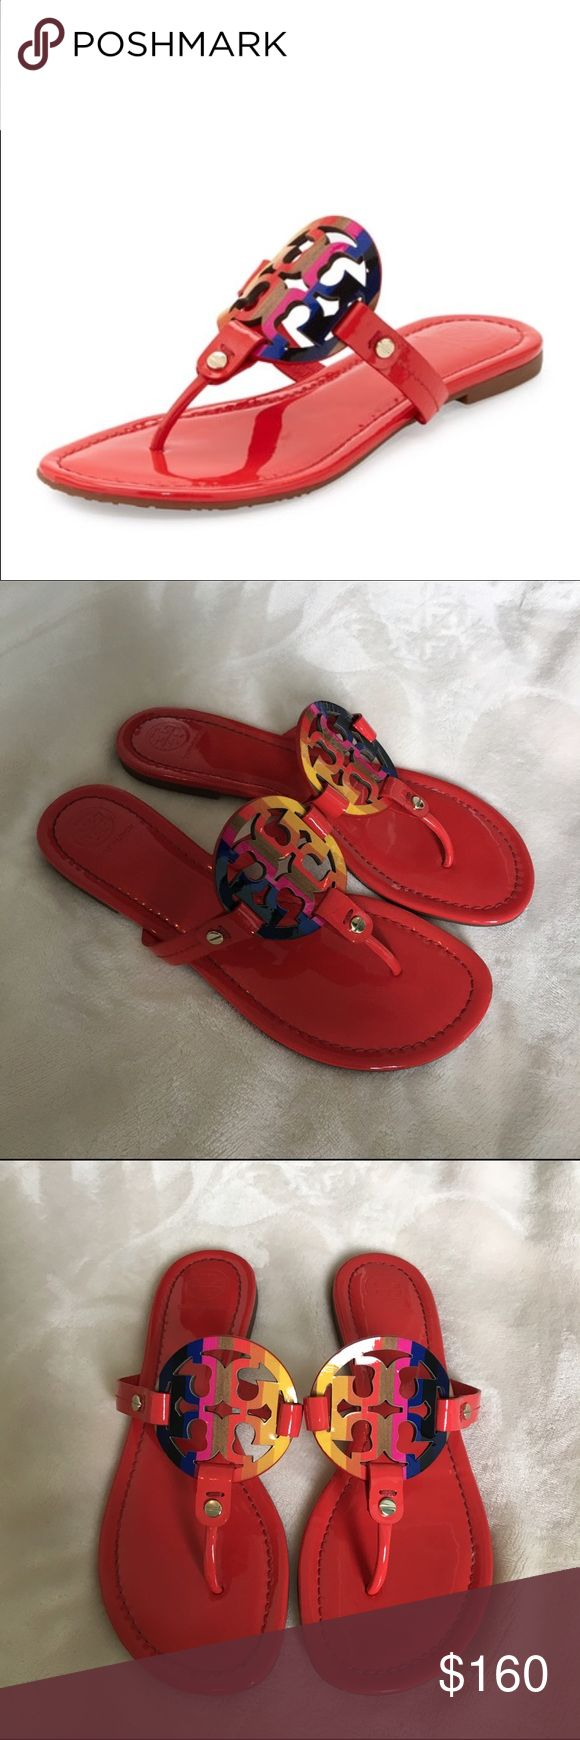 Tory Burch 'miller' flip flop Red patent leather with rainbow logo Tory Burch Miller Flip flop. WOMENS size 8. Worn 1 time AMAZING CONDITION! No flaws besides very extremely small scuff at the very top of the shoe, isn't noticeable at all especially when wearing! Super cute, sold out on Tory Burch website!!!!! Tory Burch Shoes Sandals